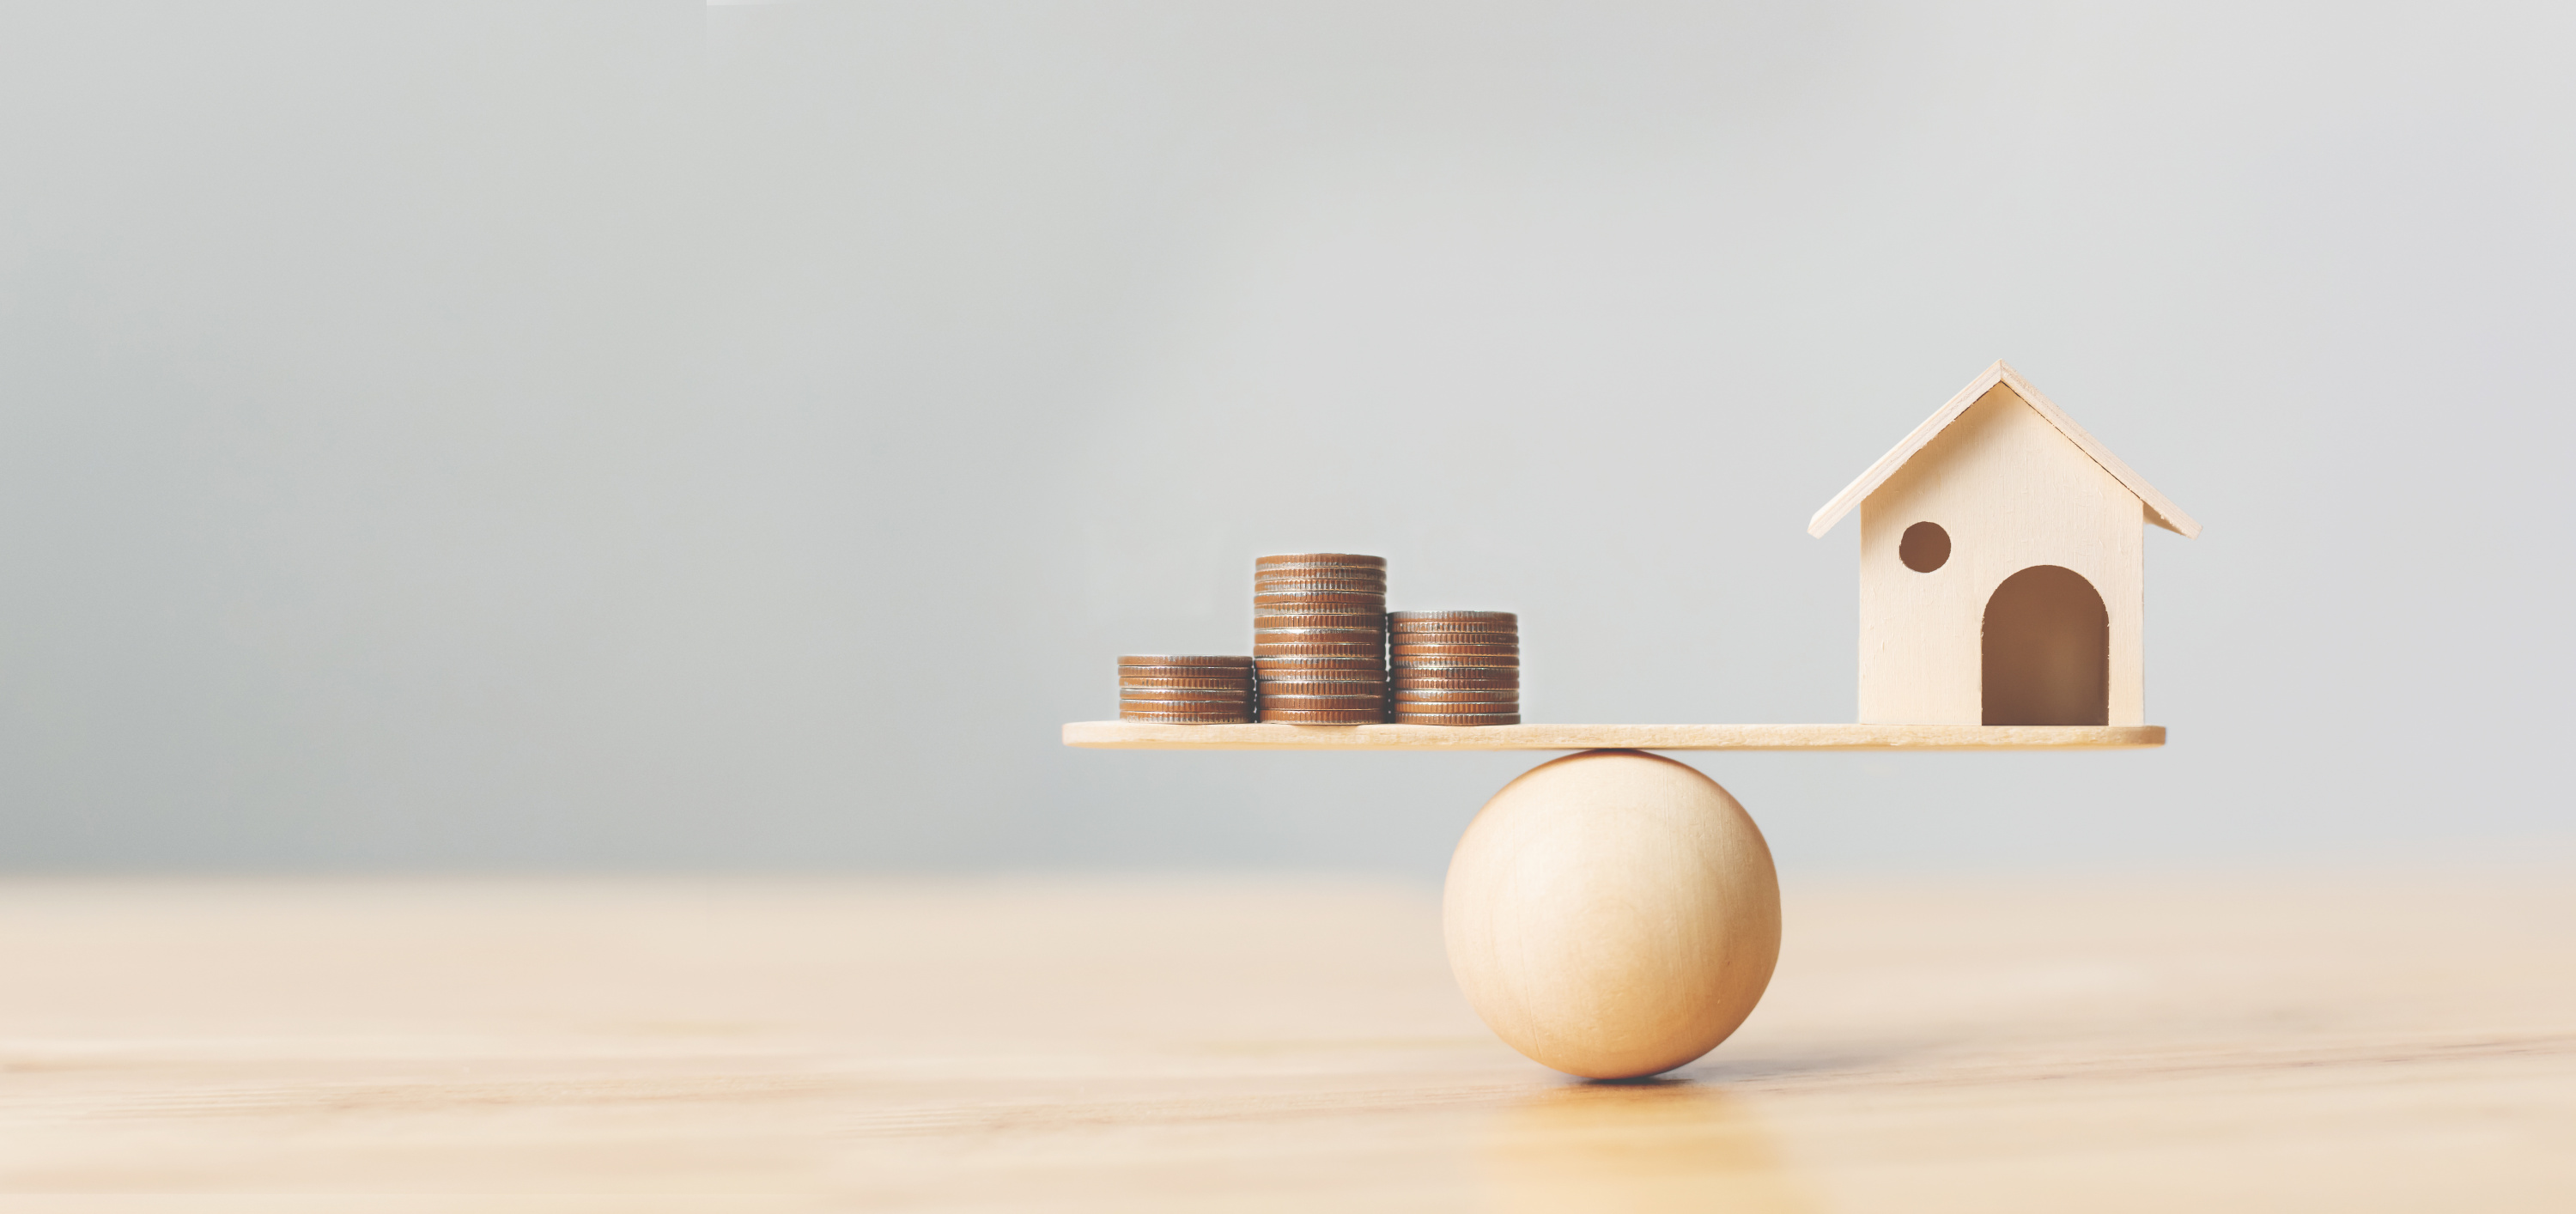 balancing a house and money - gearing